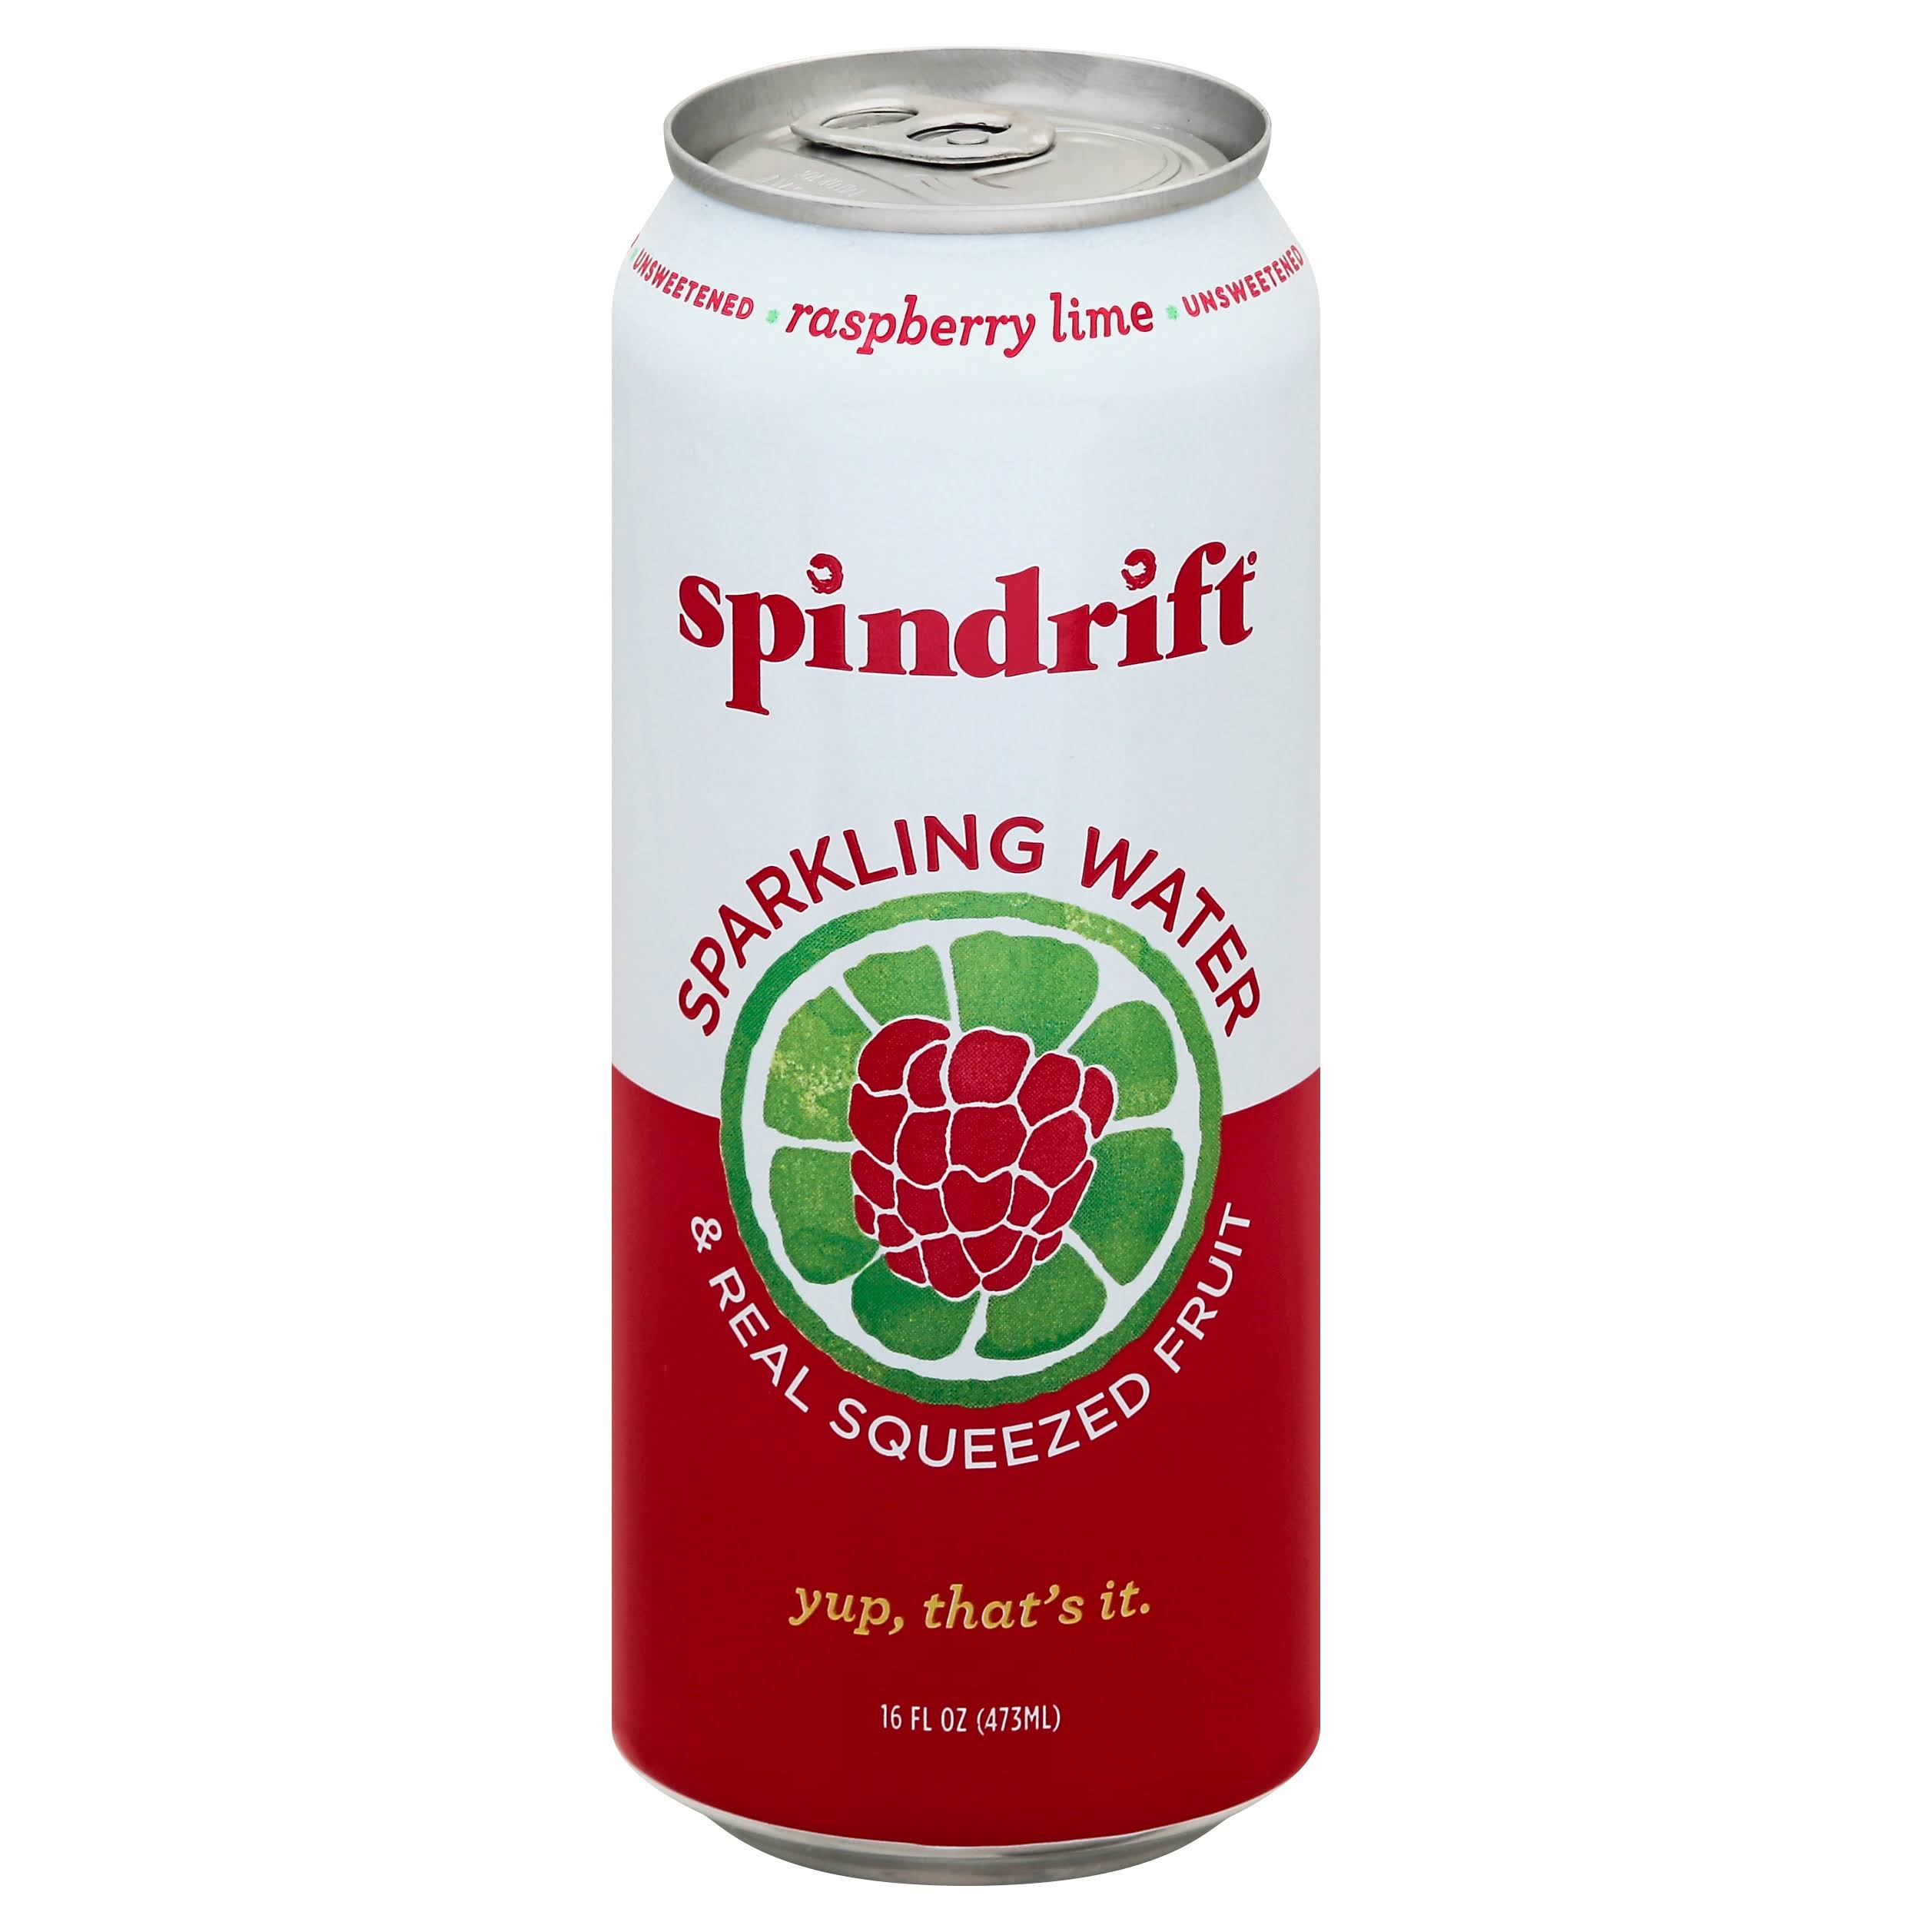 Spindrift Sparkling Water, Raspberry Lime - 16 fl oz